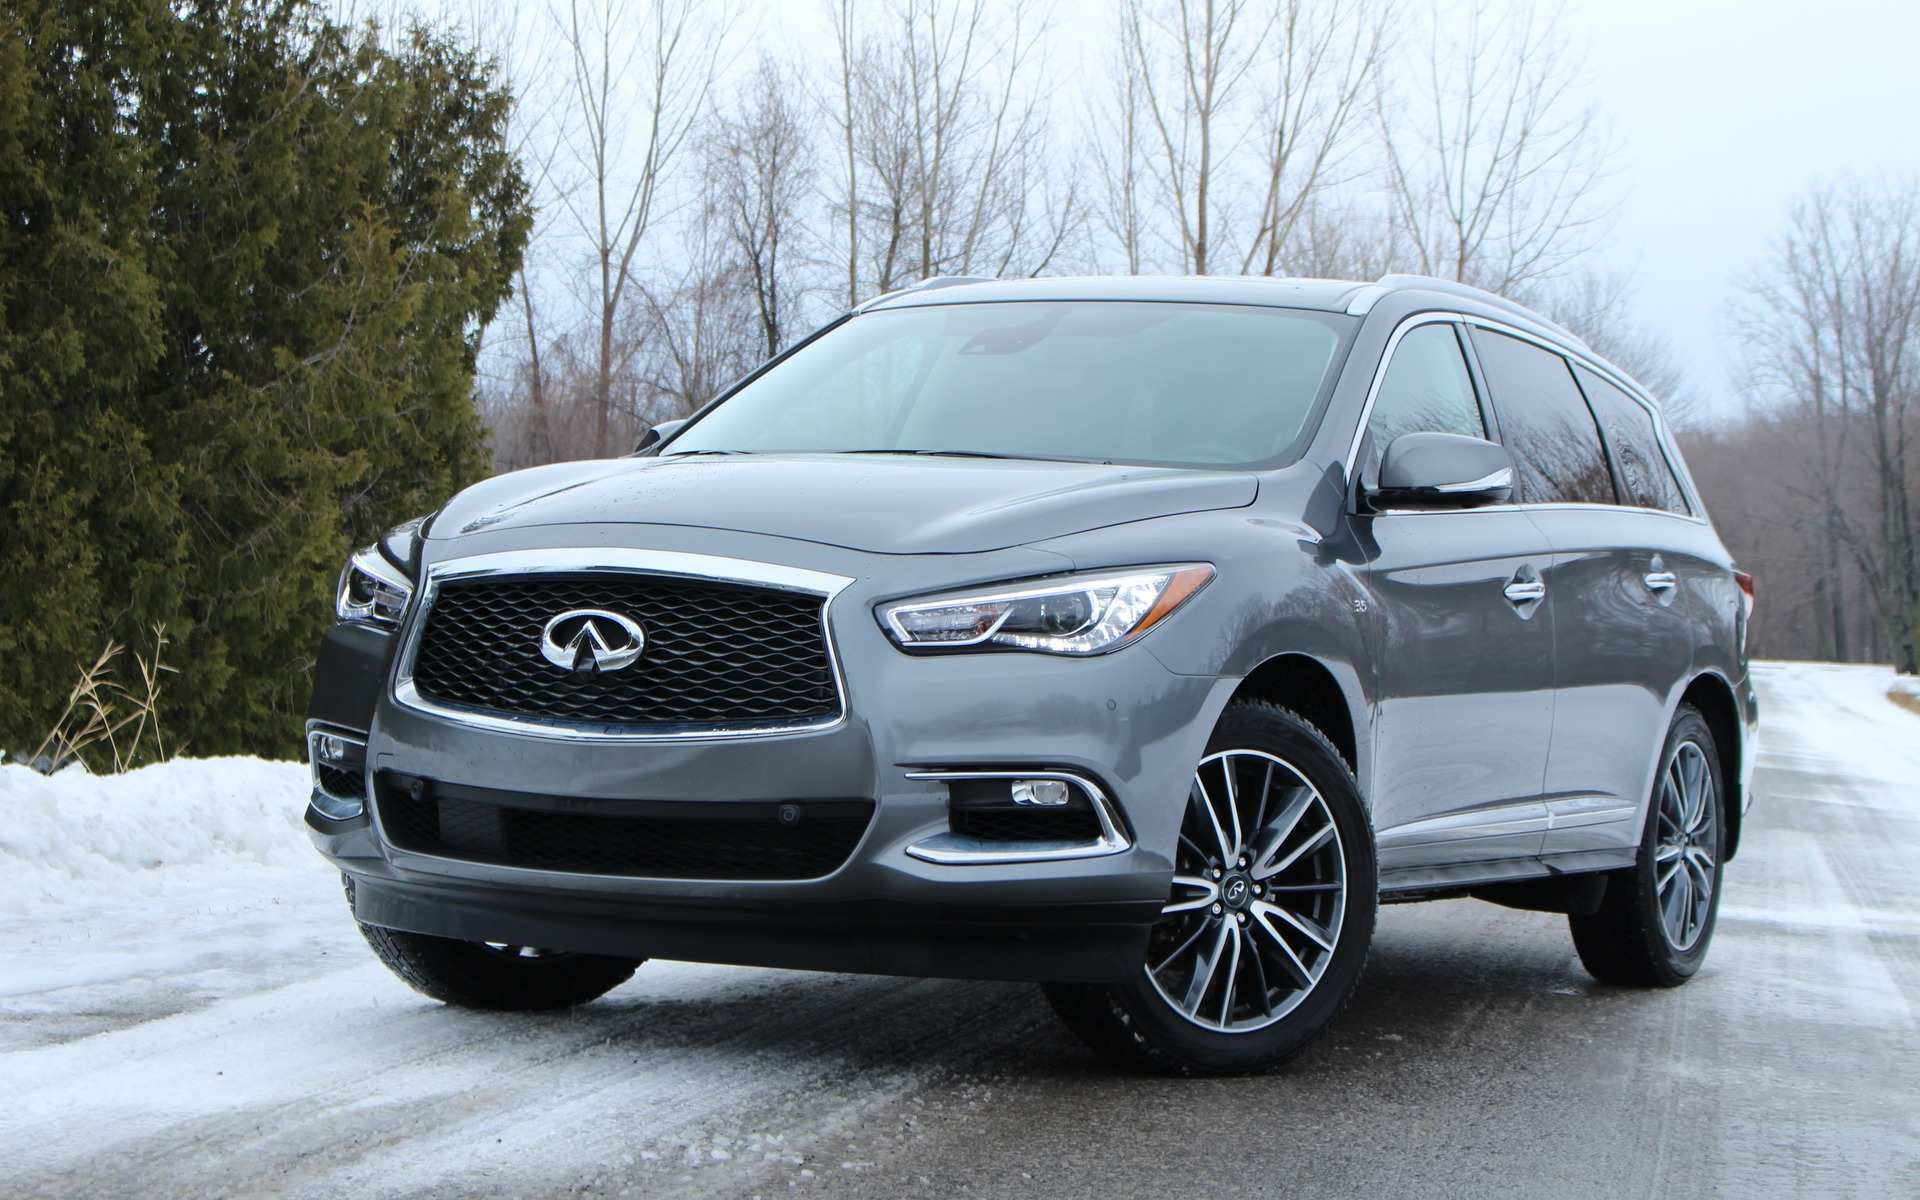 98 Best Review New 2019 Infiniti Qx60 Apple Carplay Release Date And Specs Photos for New 2019 Infiniti Qx60 Apple Carplay Release Date And Specs